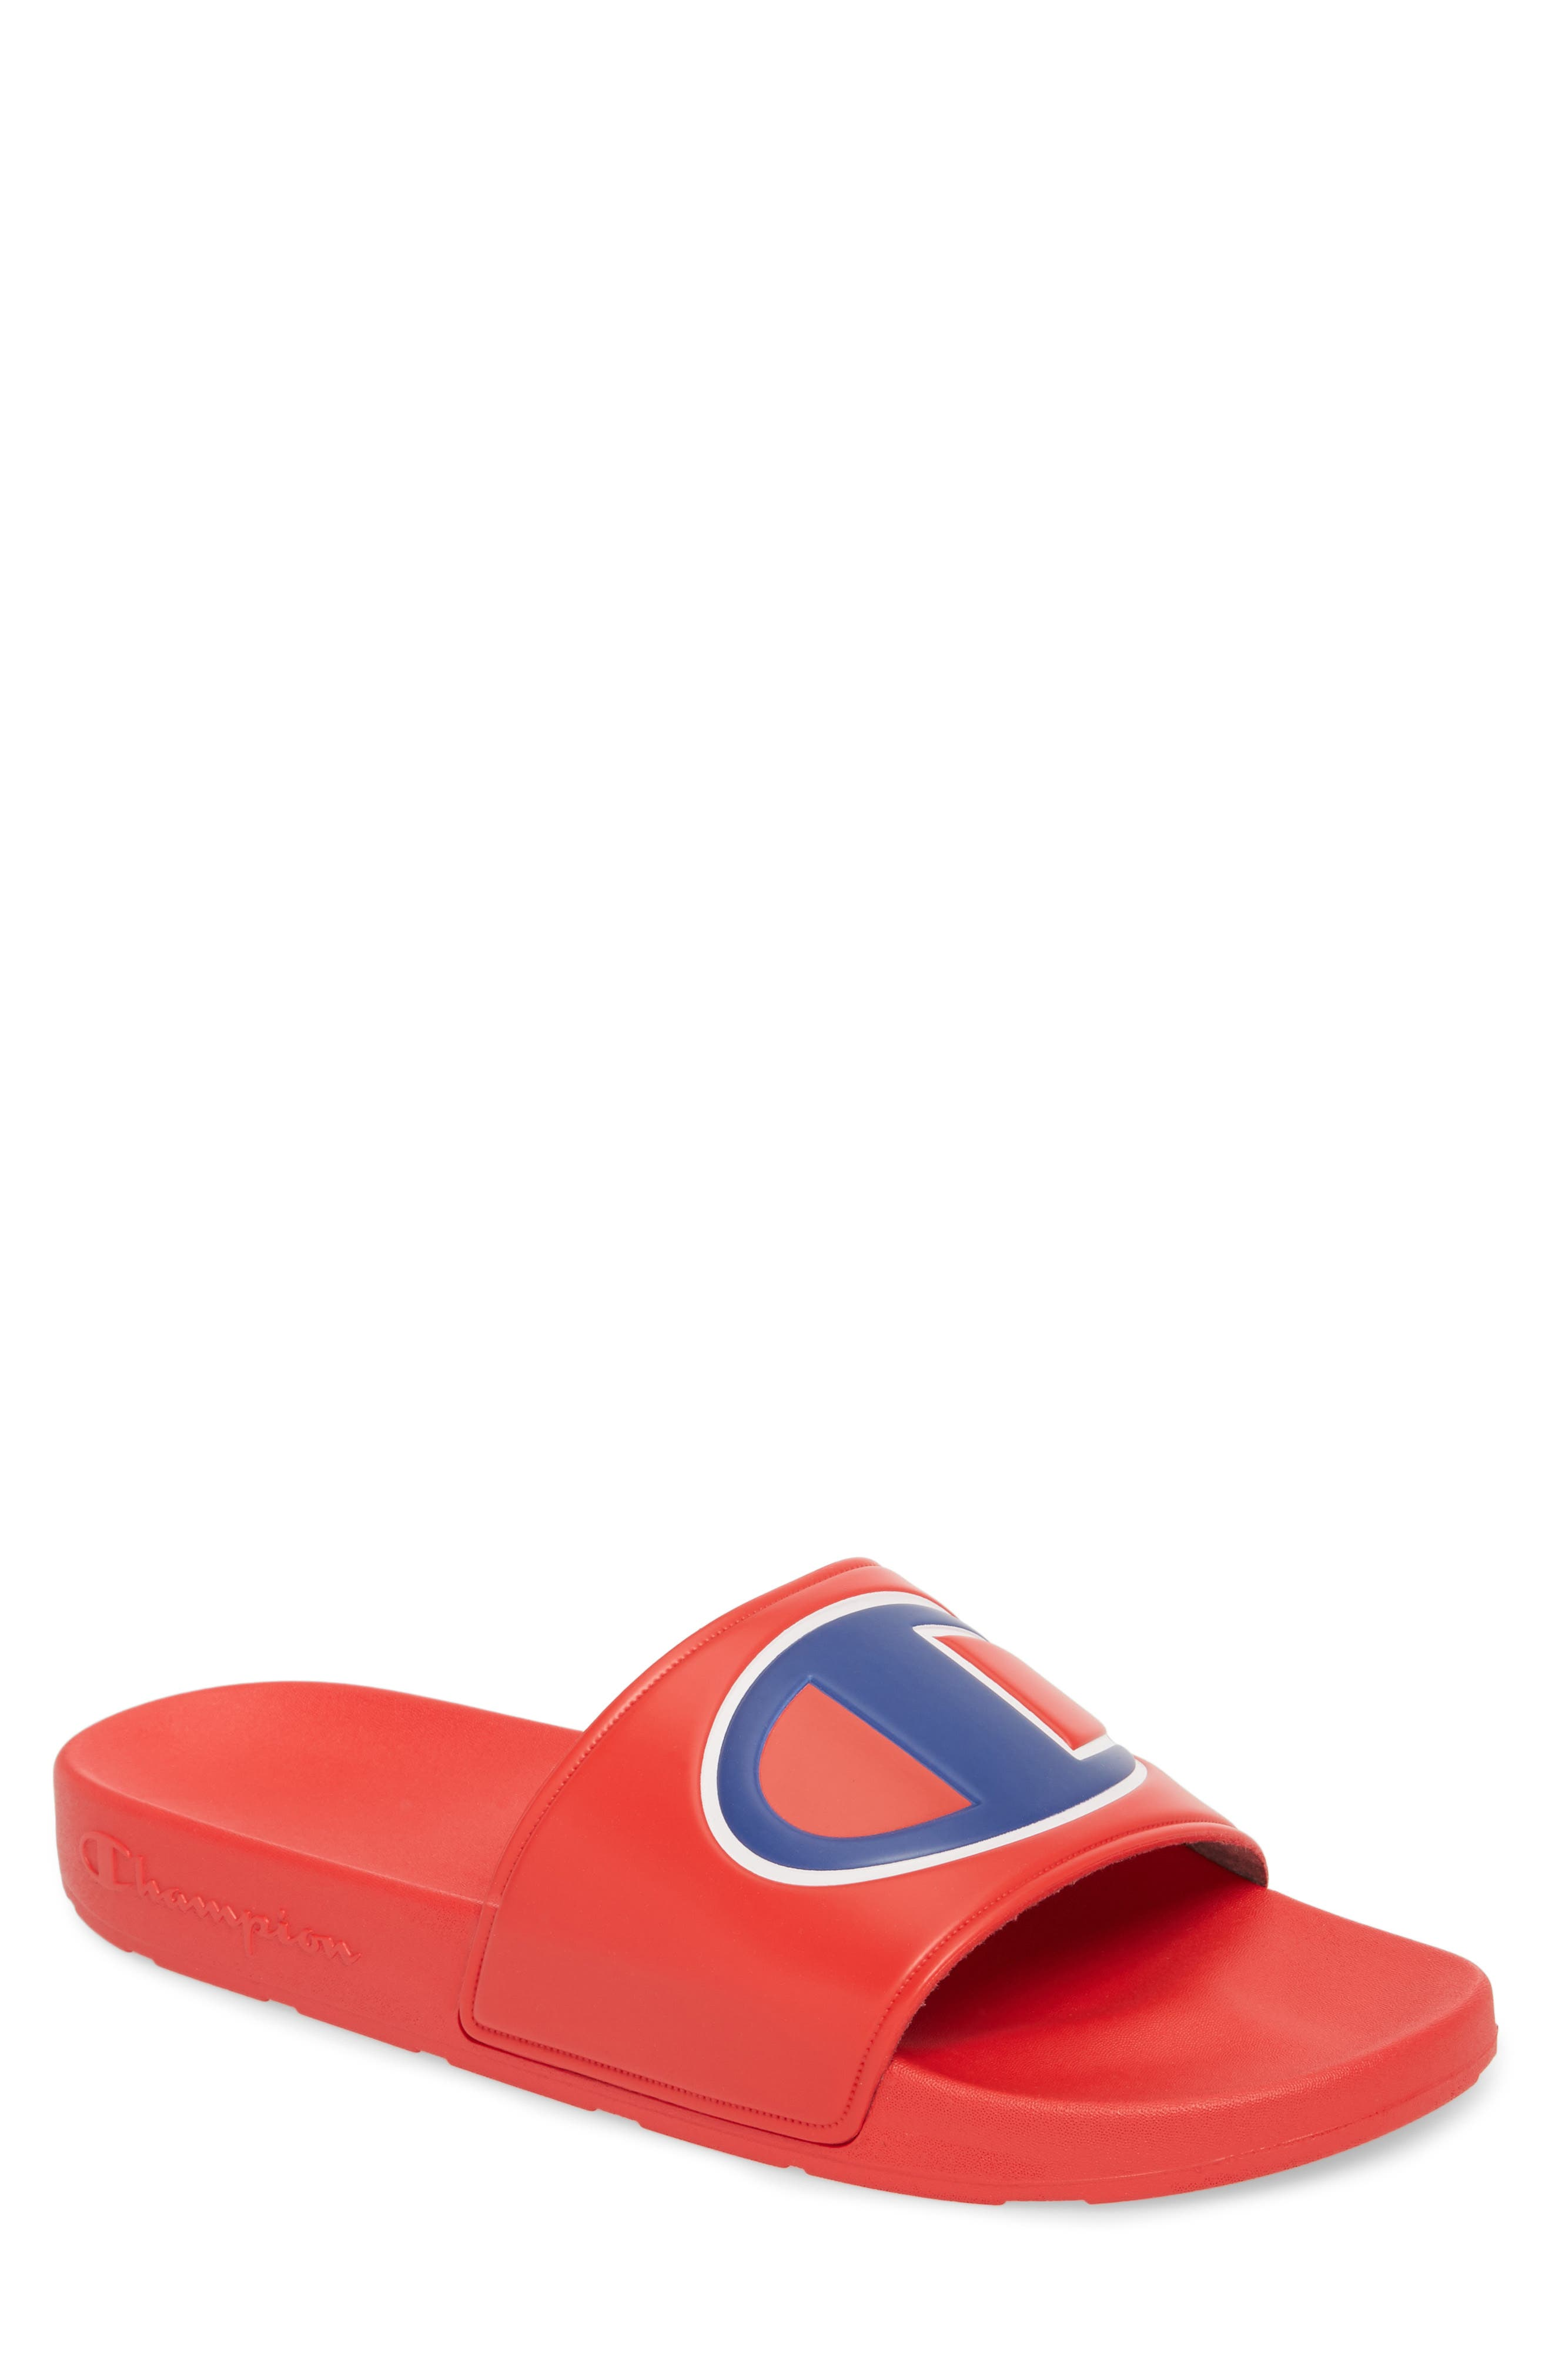 IPO Sports Slide,                         Main,                         color, RED